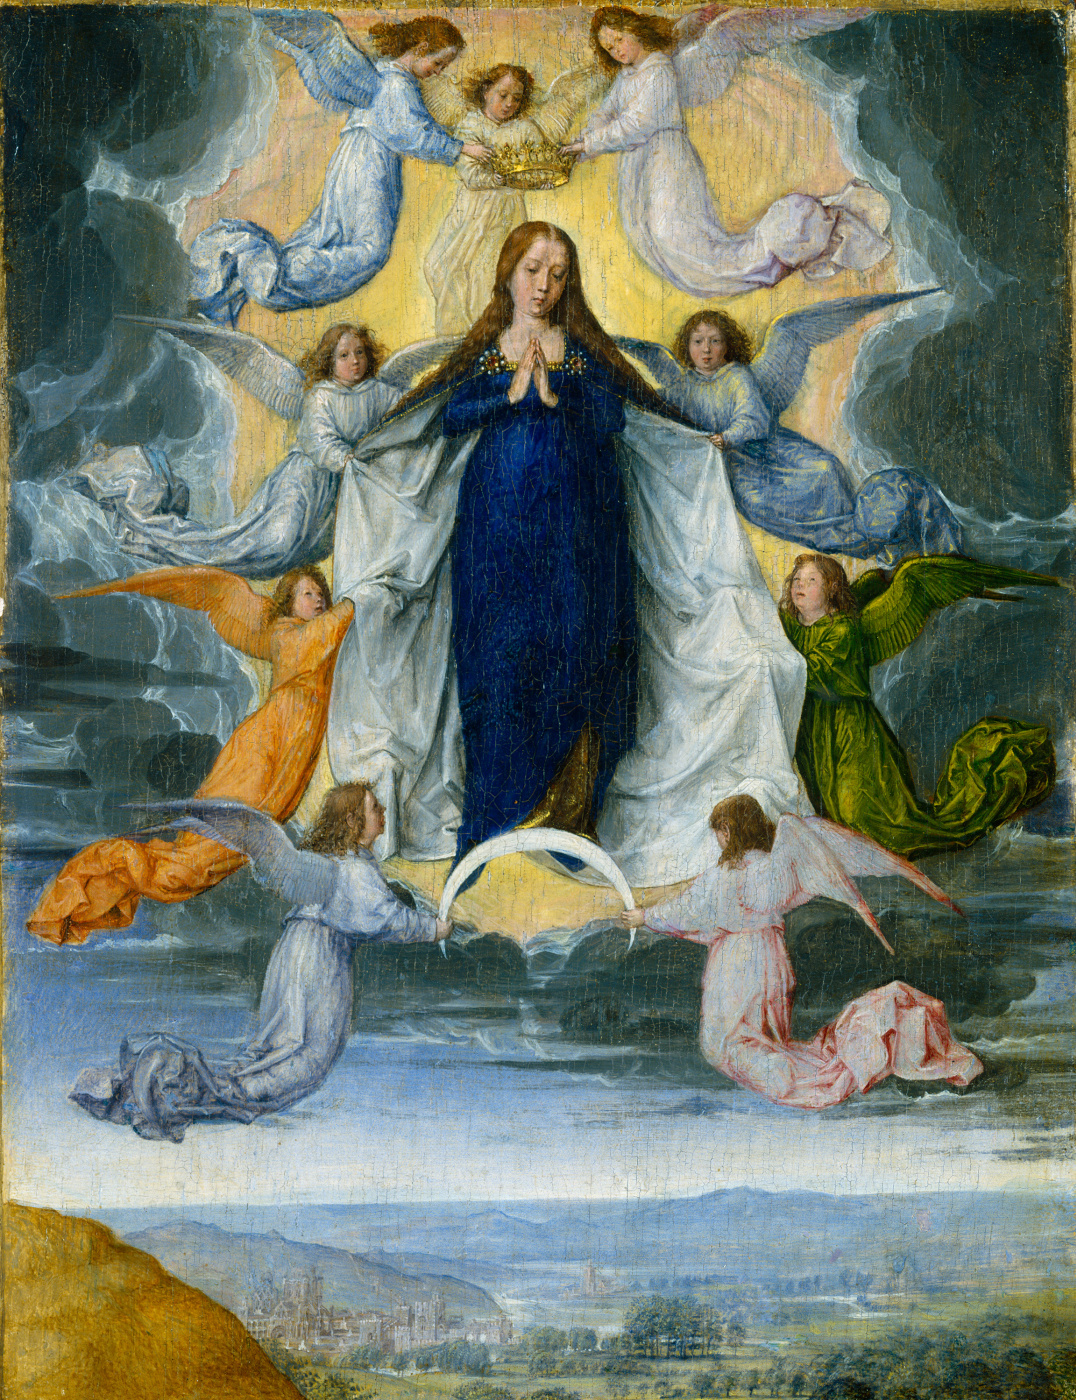 Michel Sittow. The Assumption of the Virgin